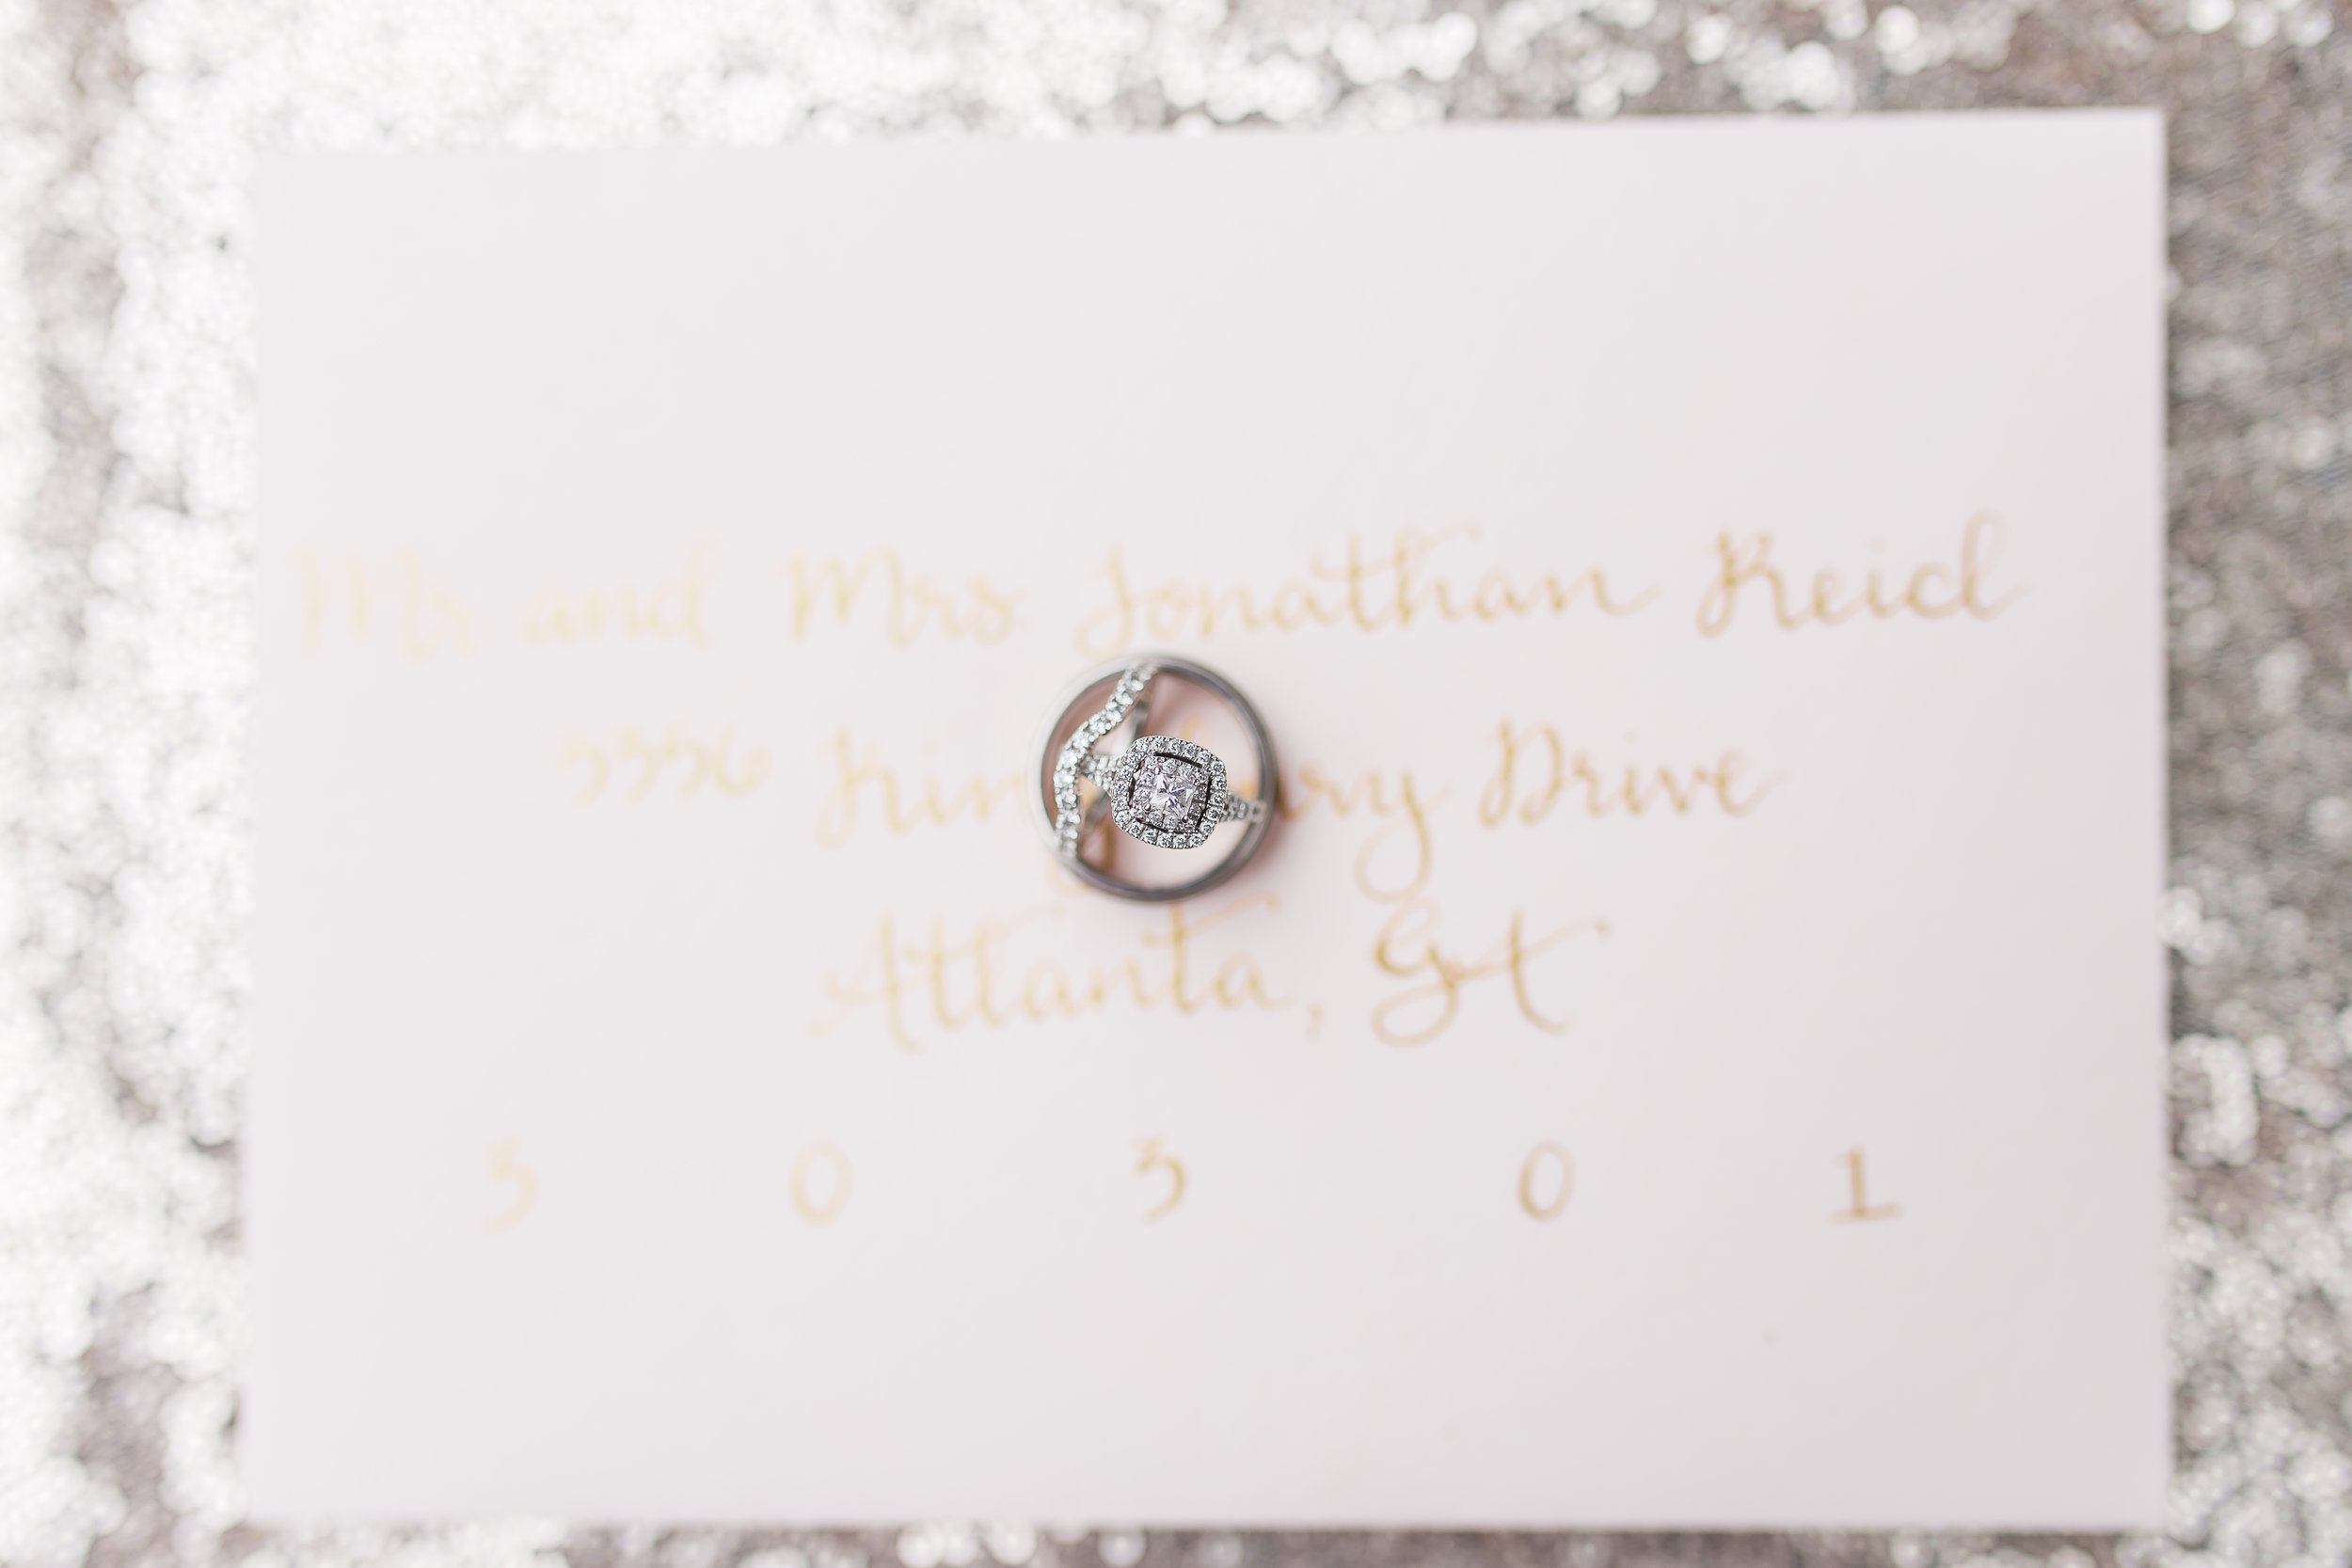 wedding envelope calligraphy with wedding rings  photo by  soul focus media